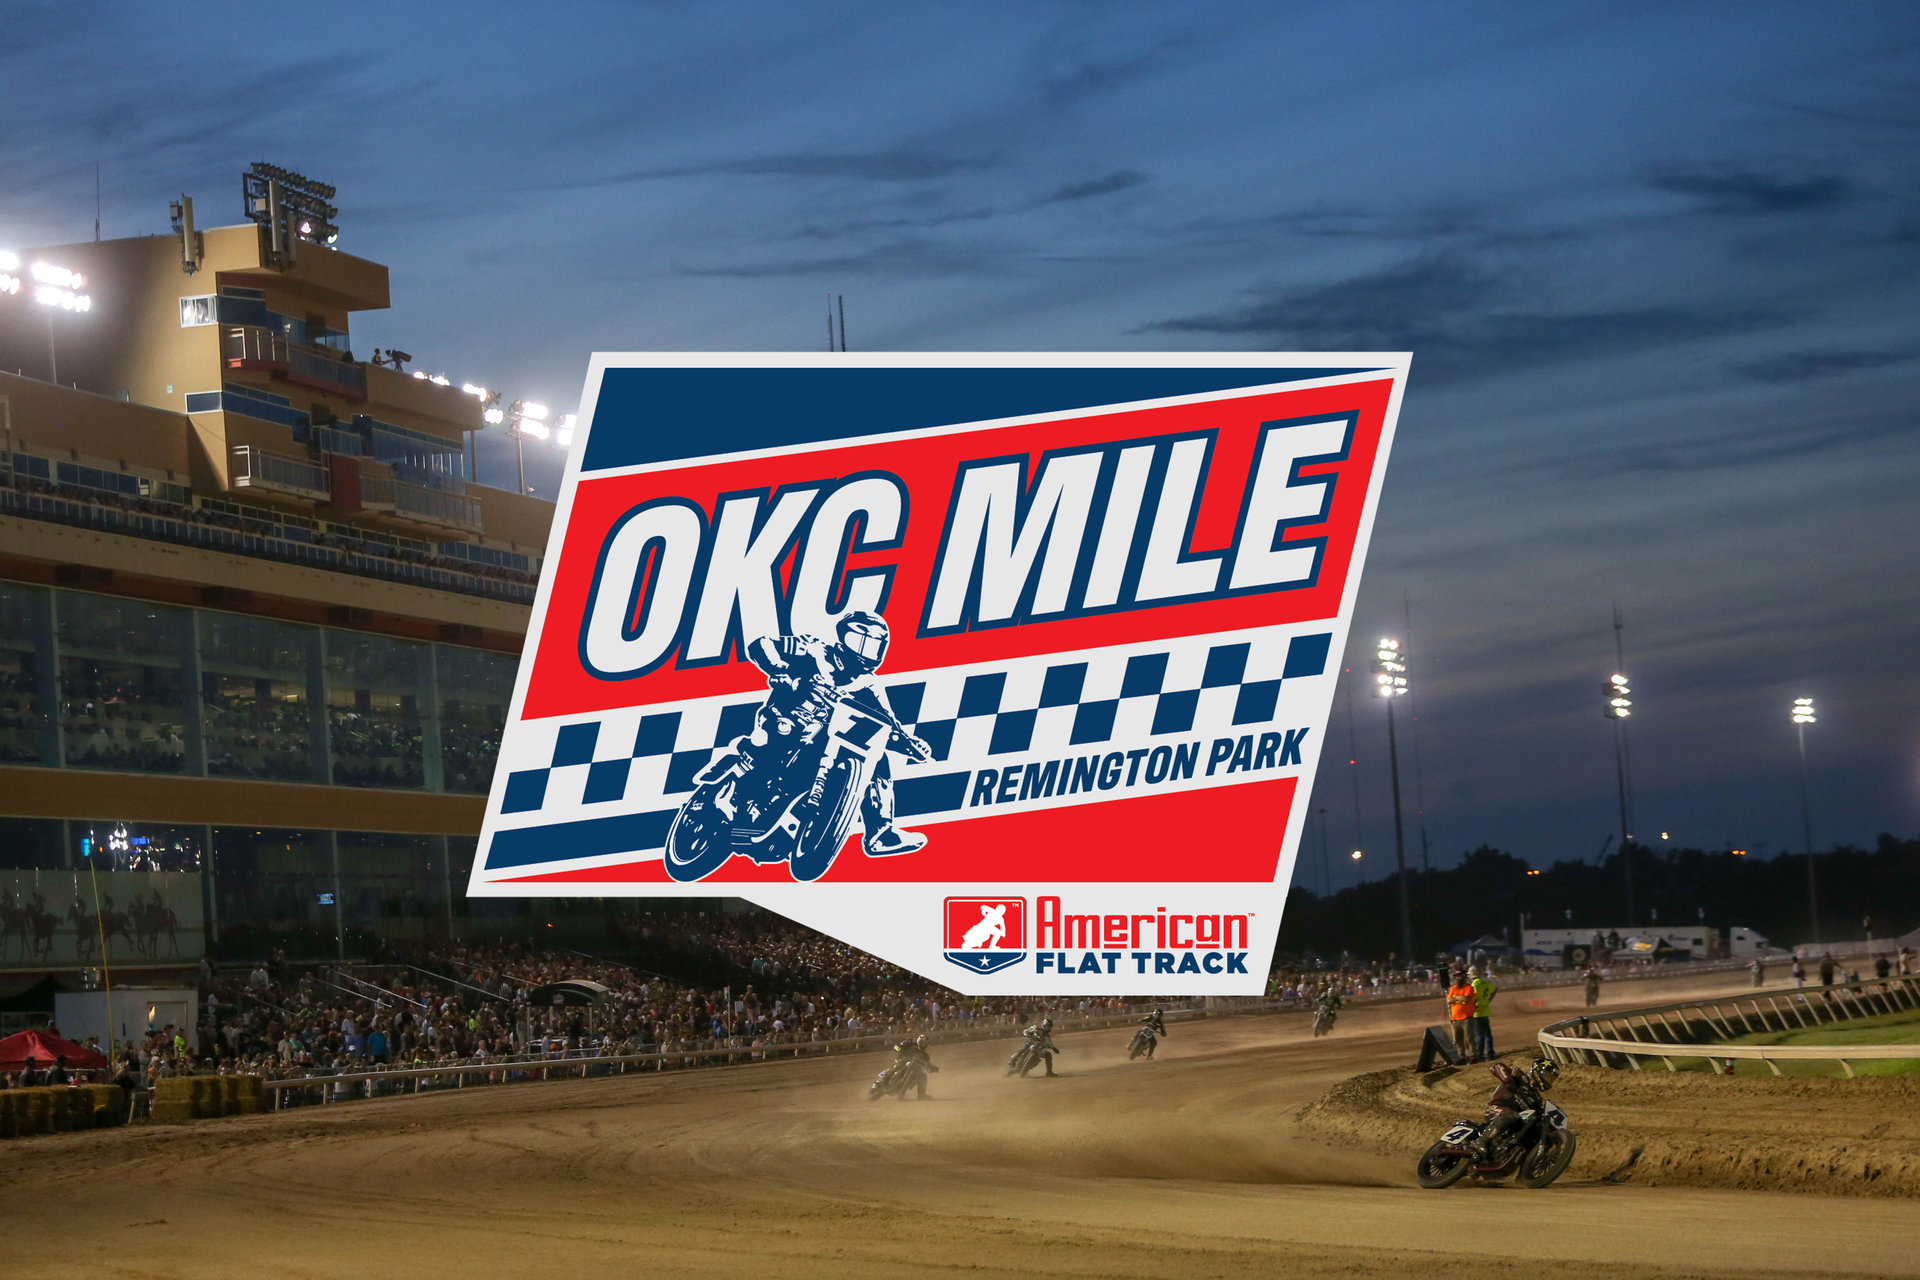 American Flat Track - 2020 OKC Mile Tickets Now Available